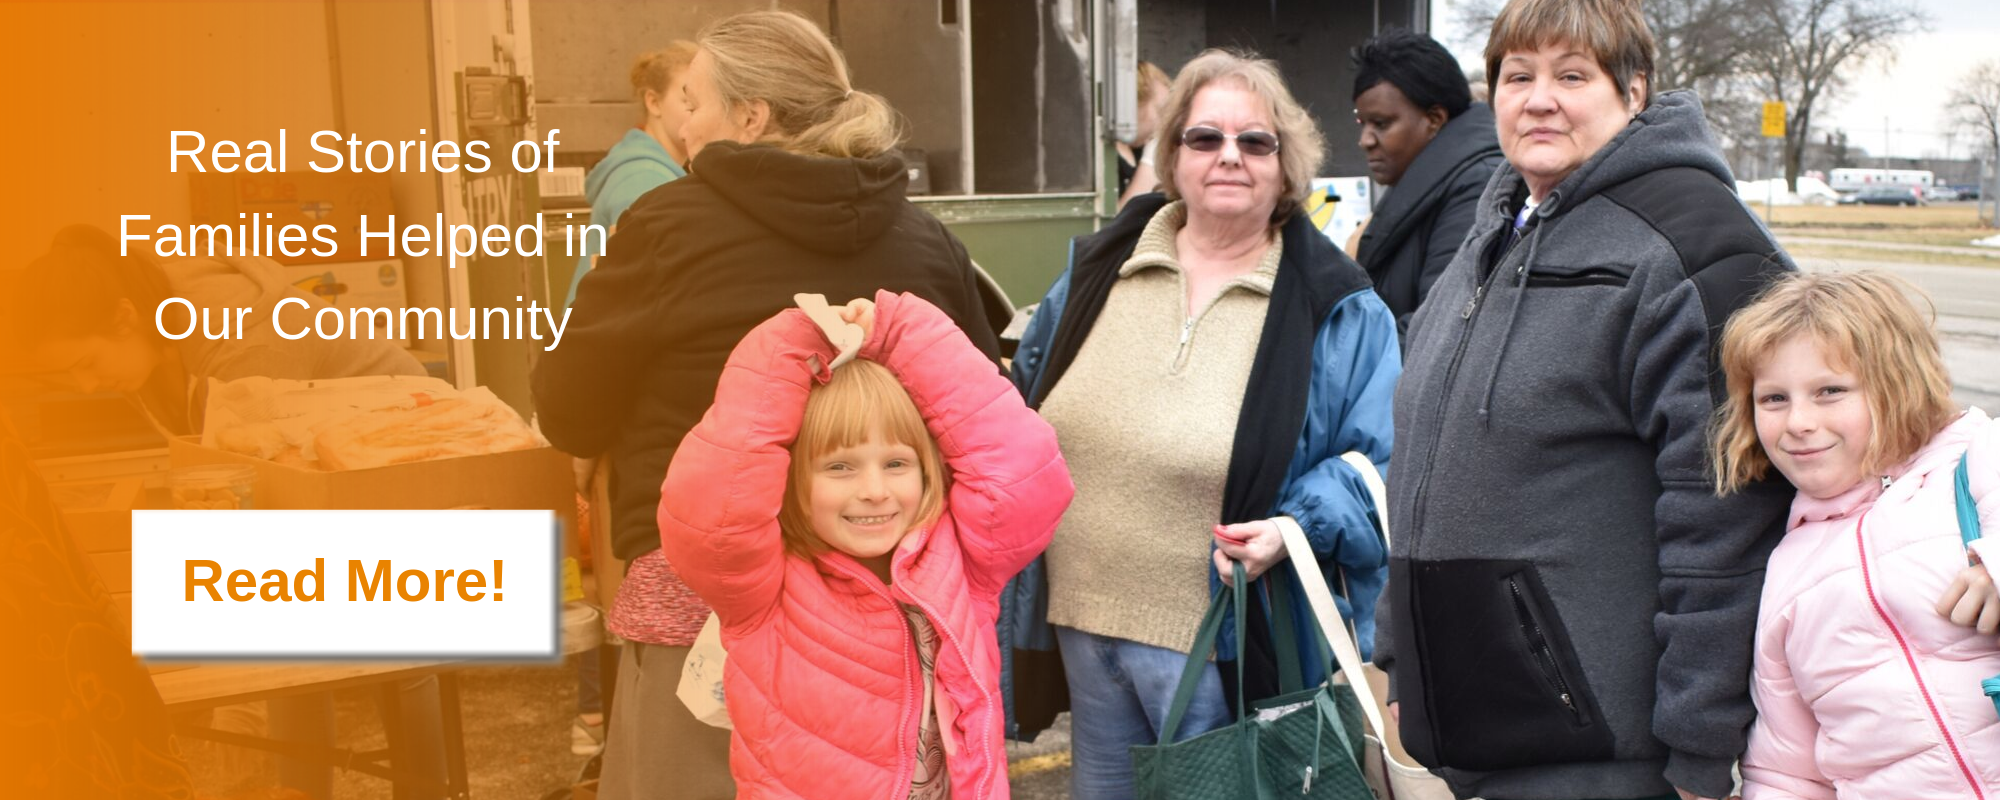 Real stories of families helped in our community. Read more.